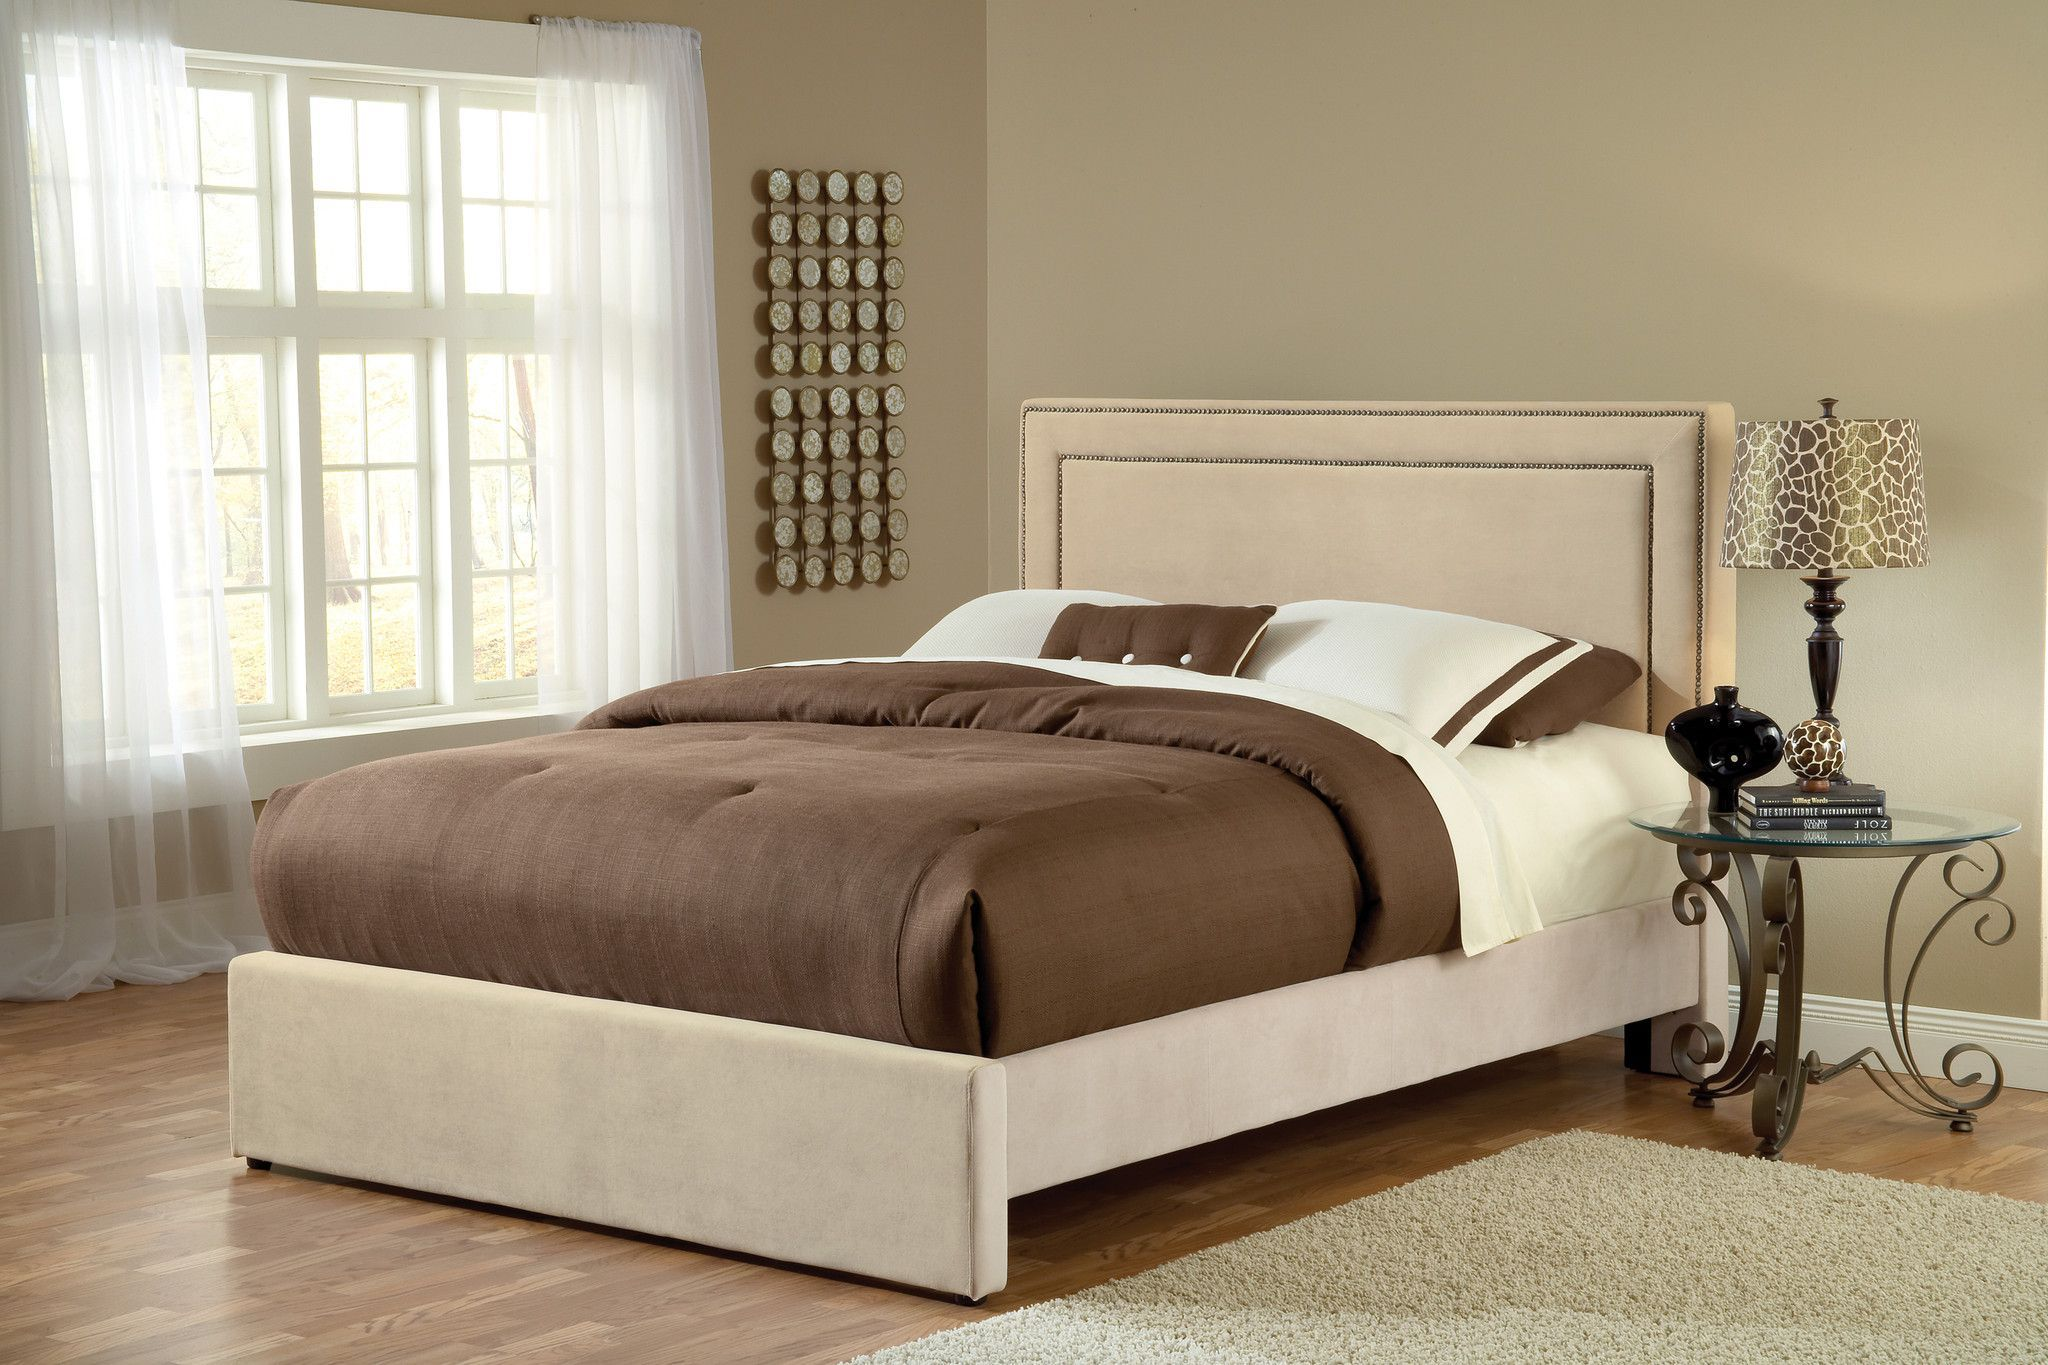 The Amber bed is both fashionable and comfortable. An